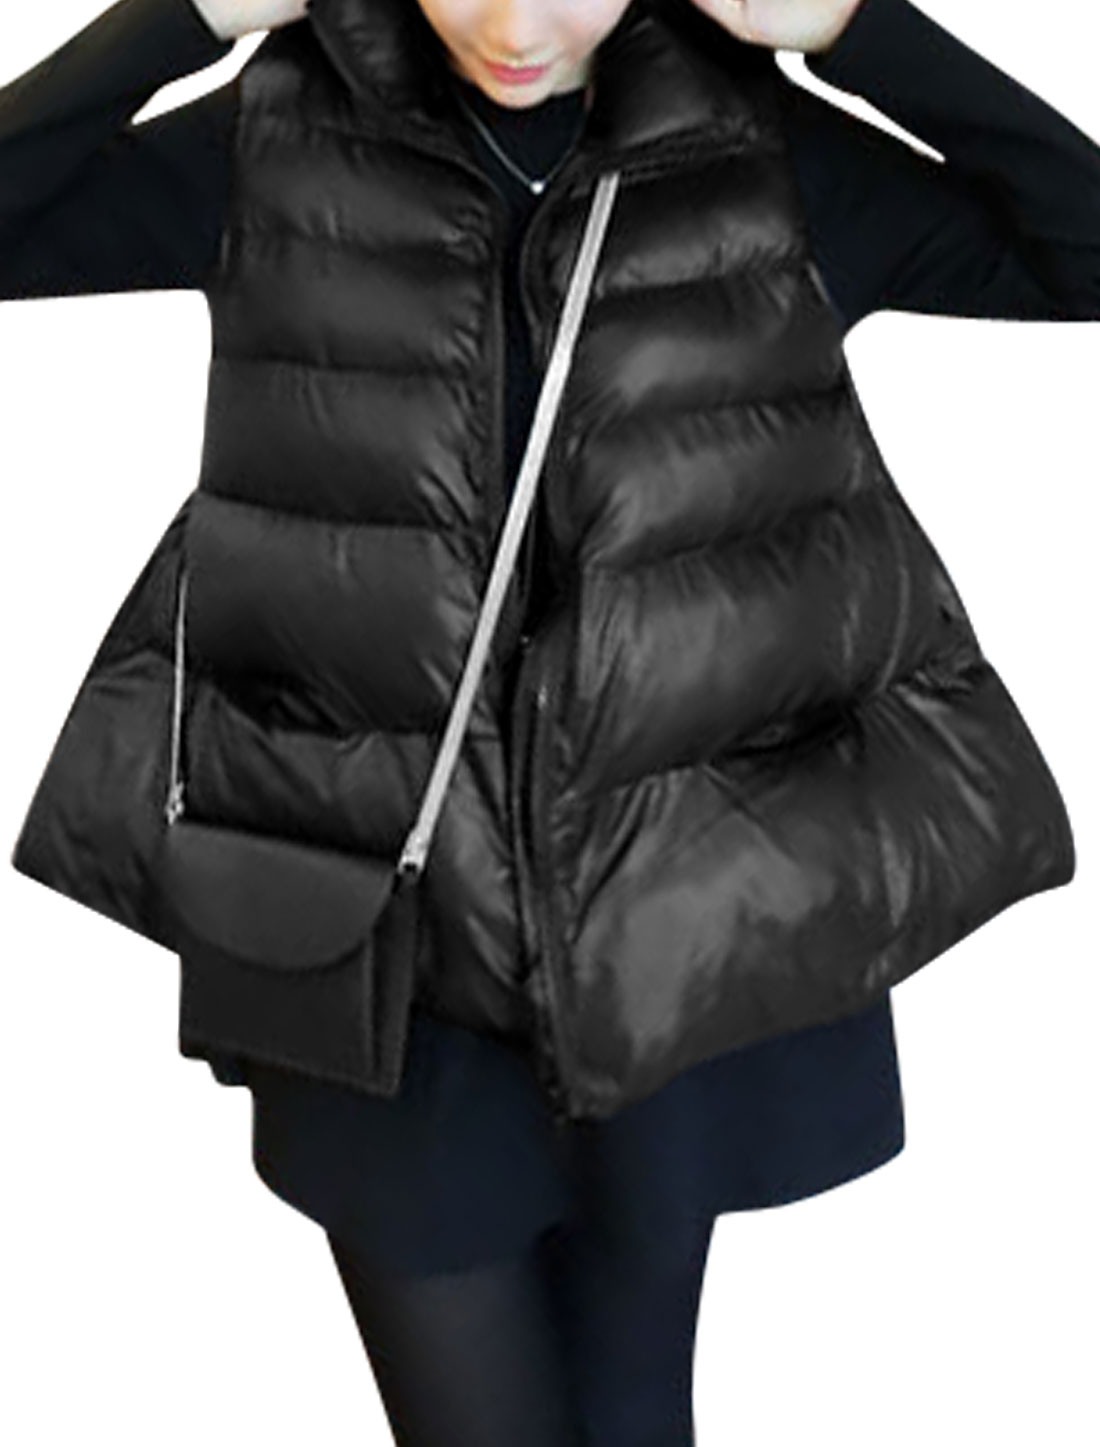 Stand Collar Sleeveless Casual Padded Vest for Women Black XS